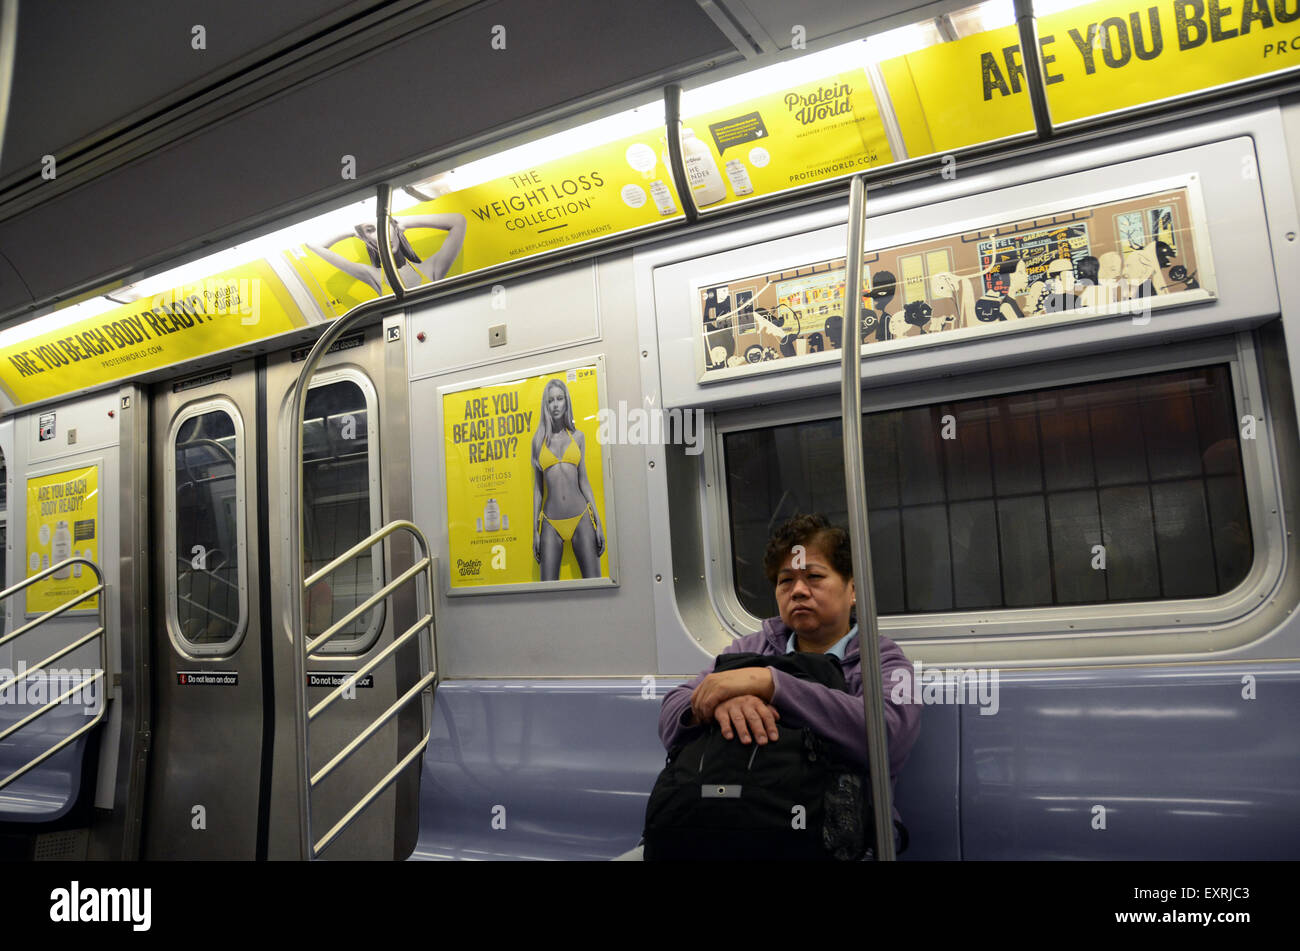 protein world advert beach body ready weight loss collection subway tube underground advert controversial poster - Stock Image